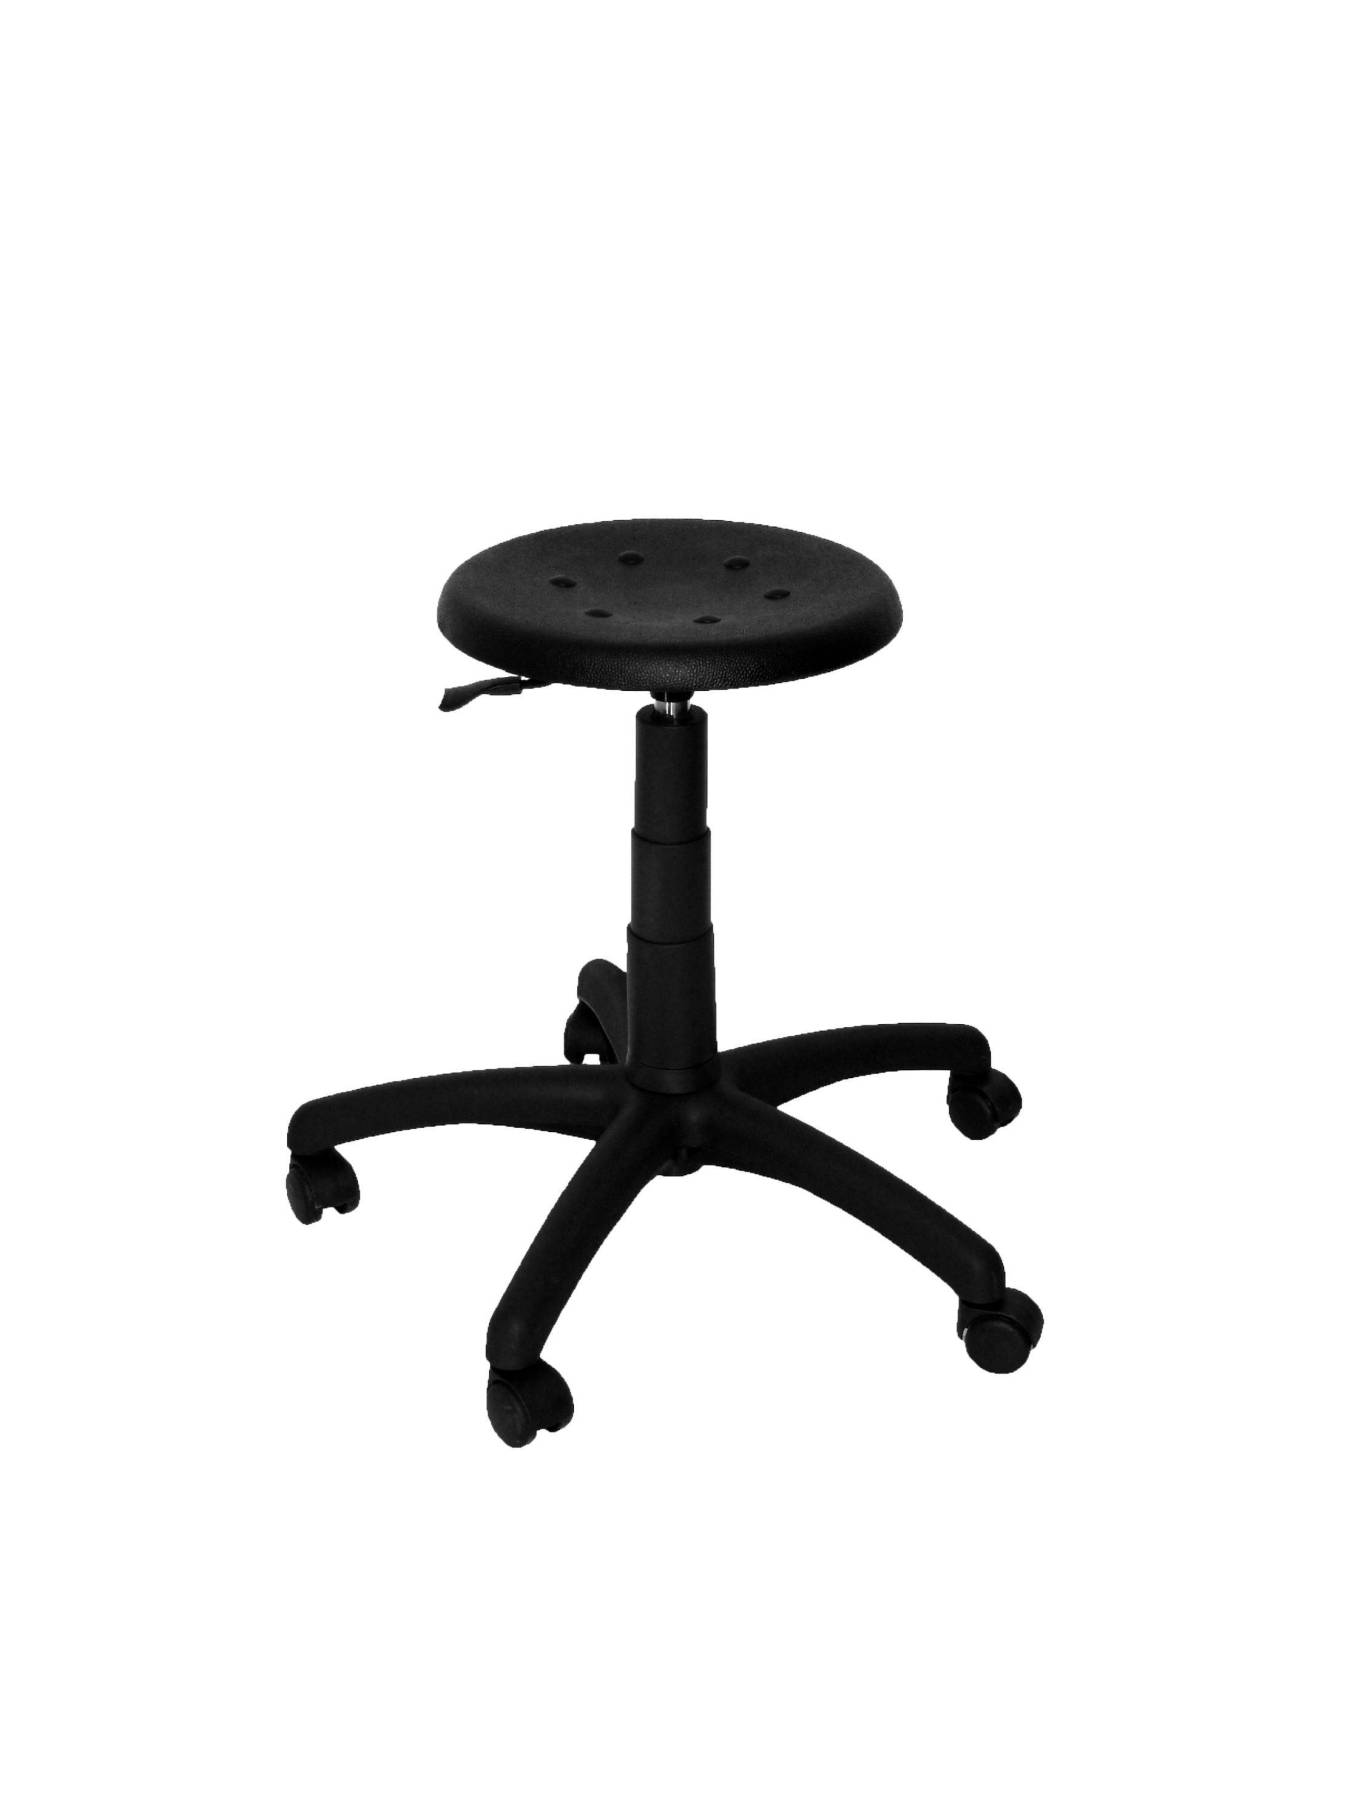 Stool Working, Swivel And Dimmable In High Altitude Using Cylinder Gas-up Seat From Polyurethane Black Color PIQUE